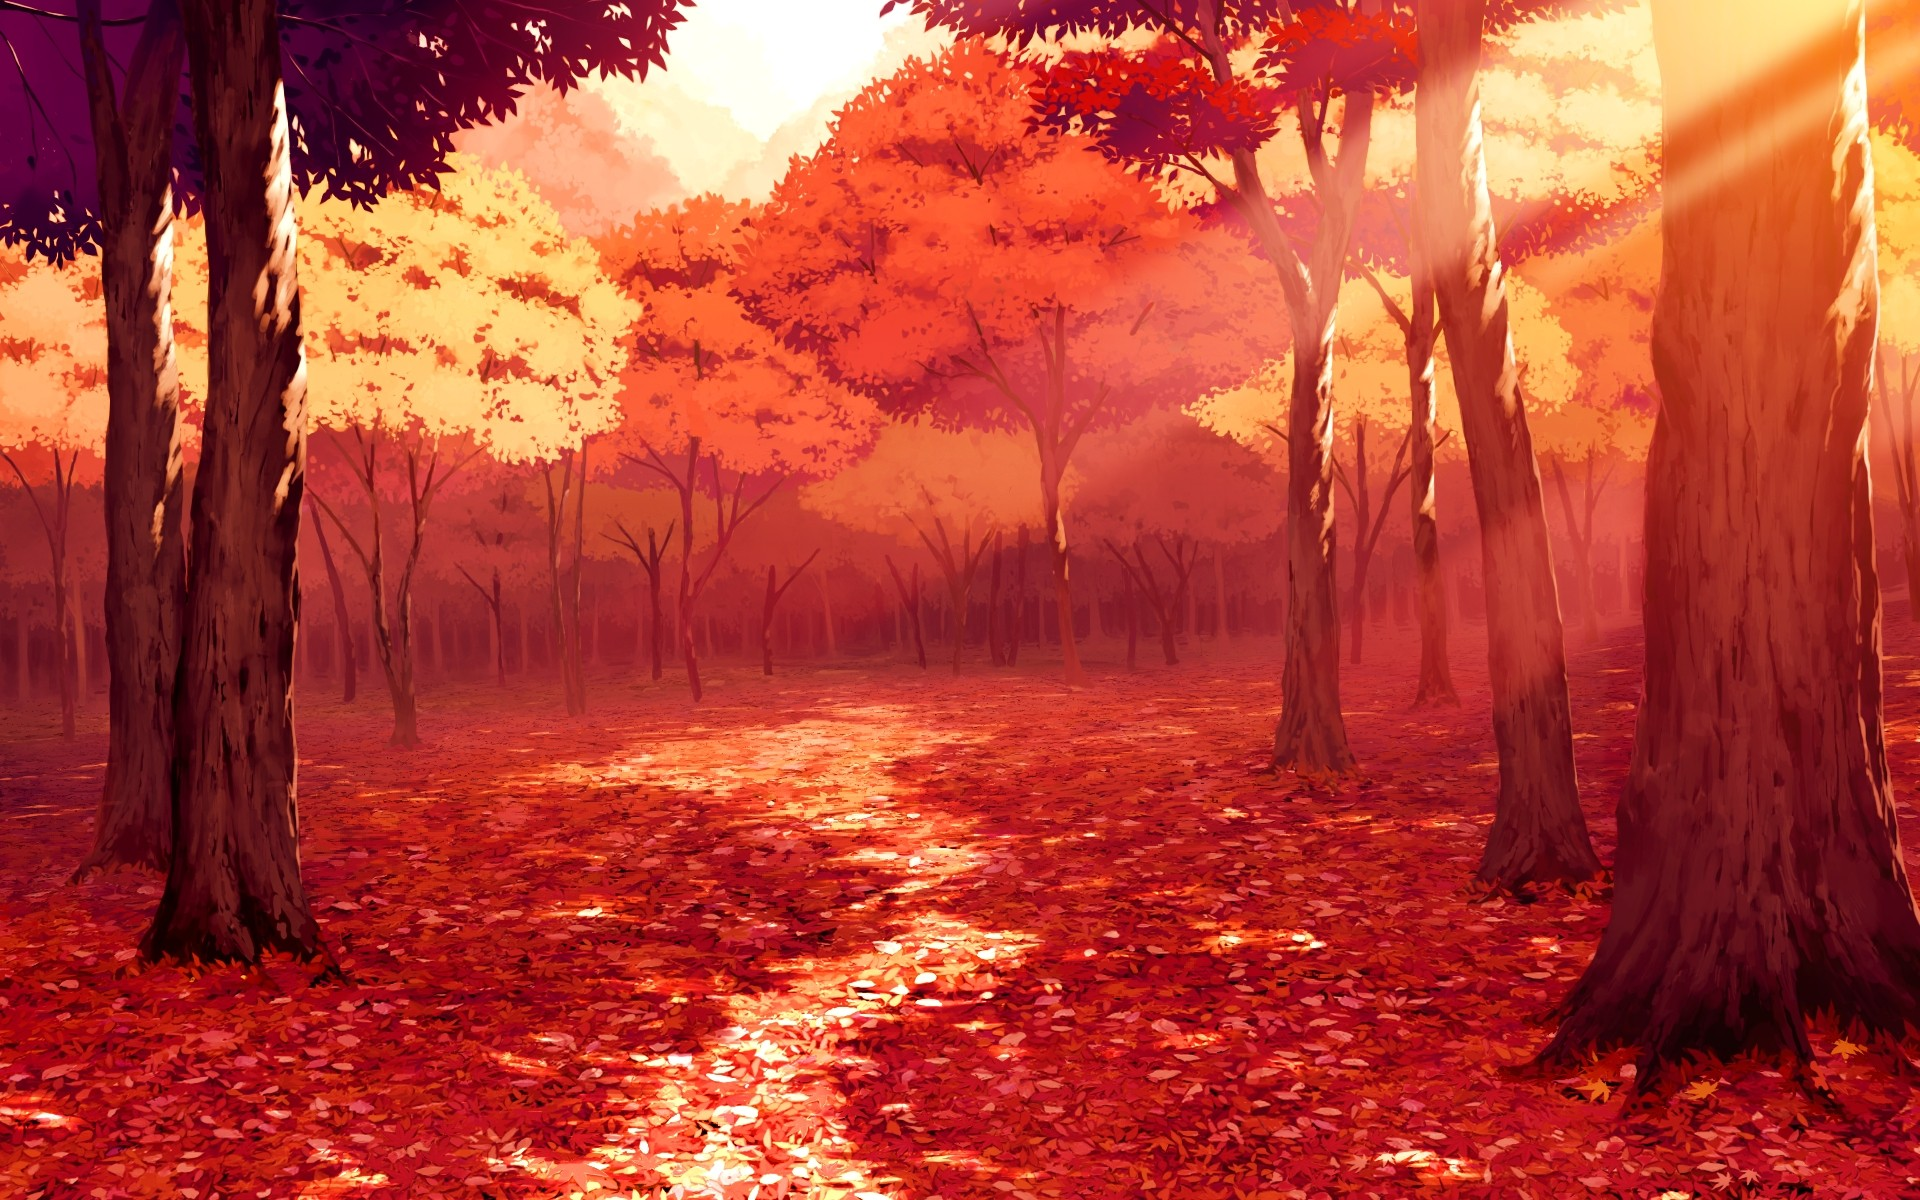 anime backgrounds wallpaper 1920x1080 46840